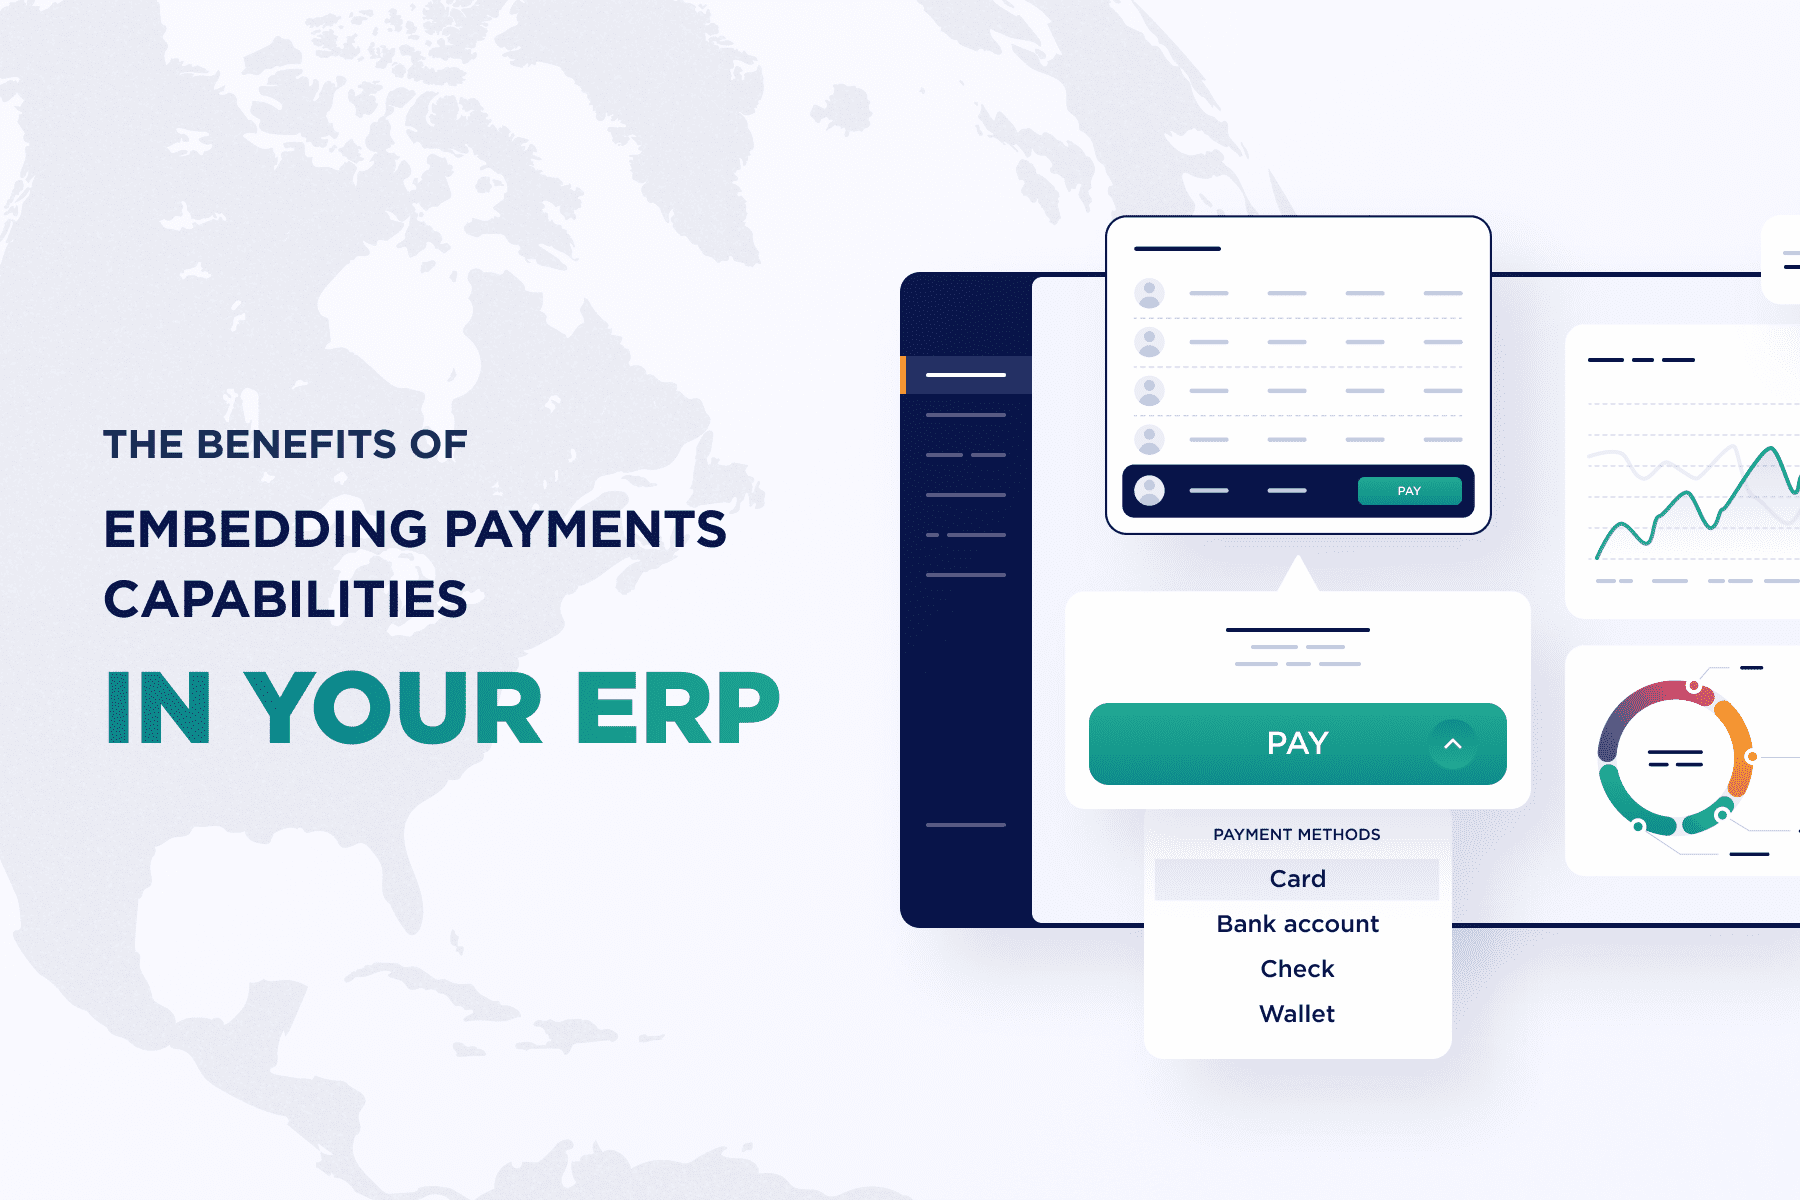 benefits-embedding-payments-erp